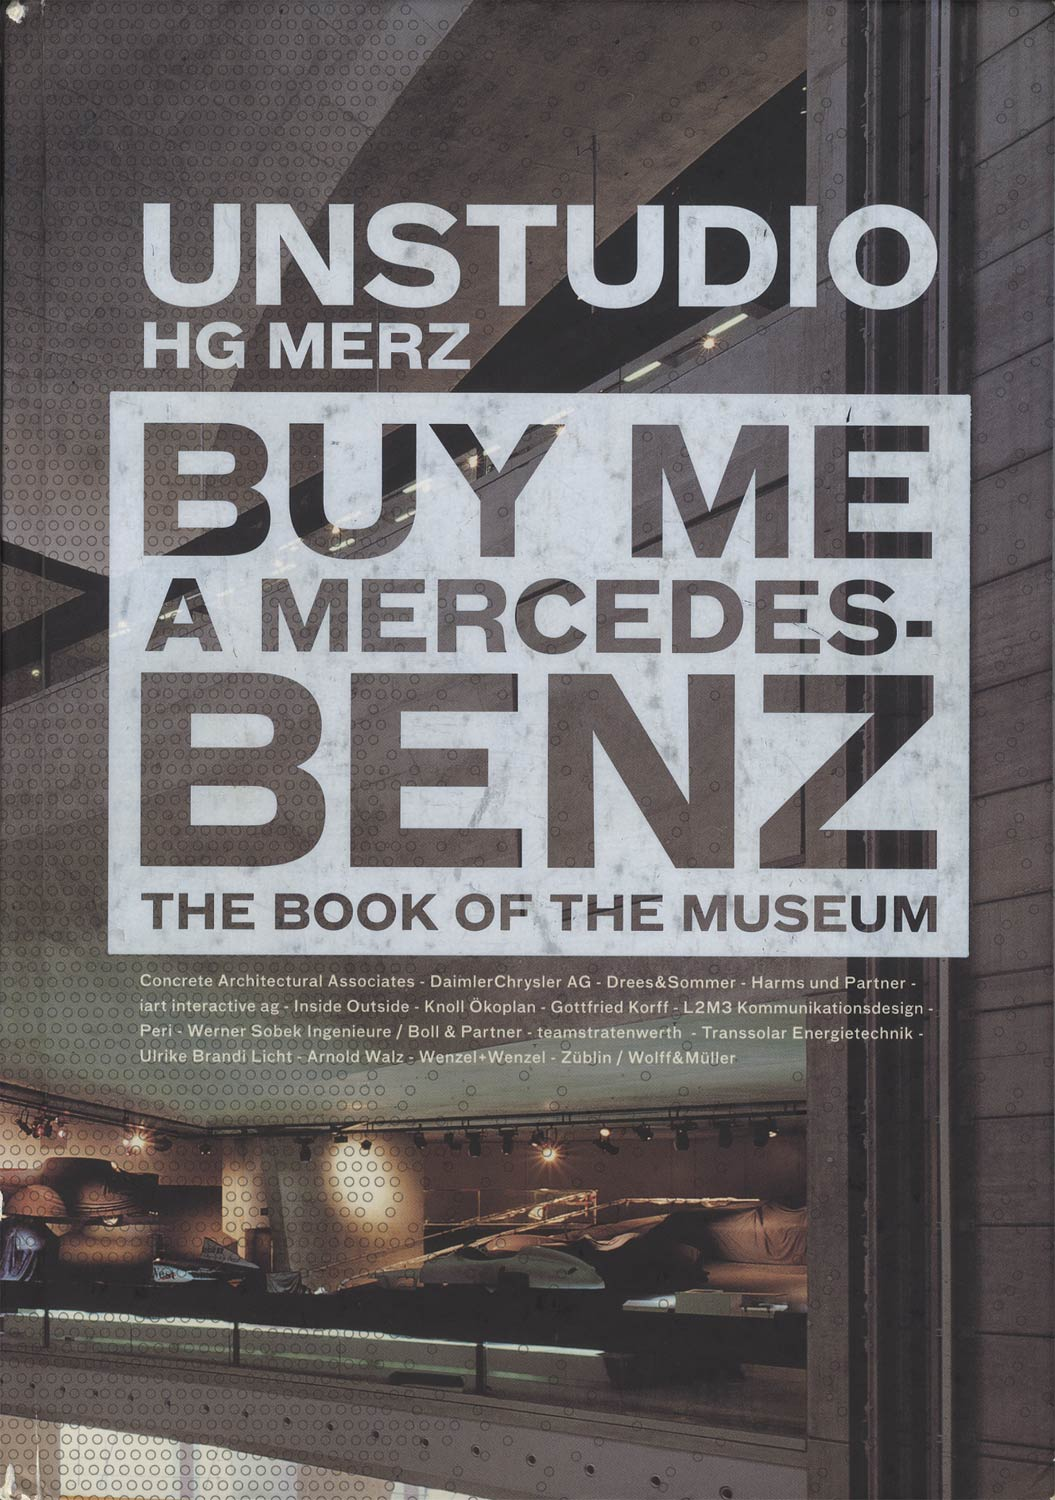 UN Studio : BUY ME A MERCEDES-BENZ The Book of the Museum